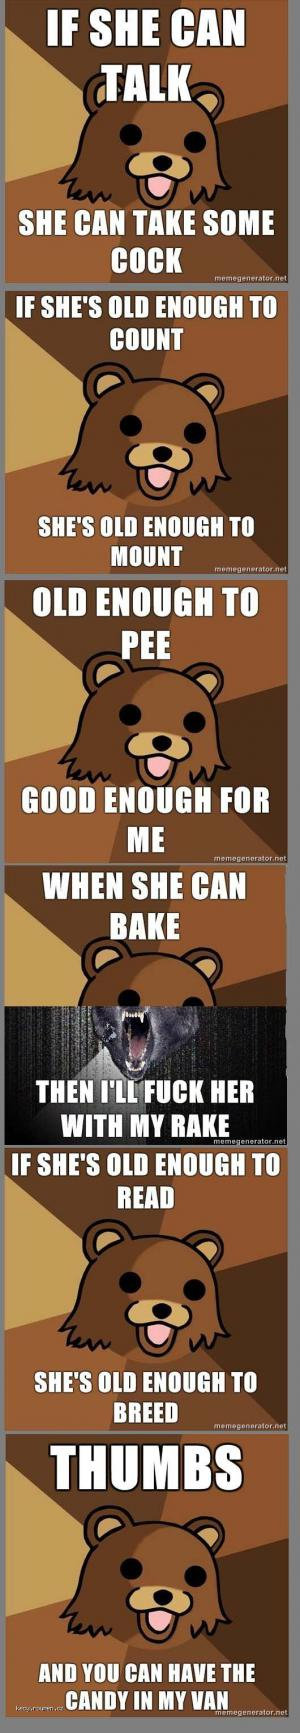 pedobear philosophy